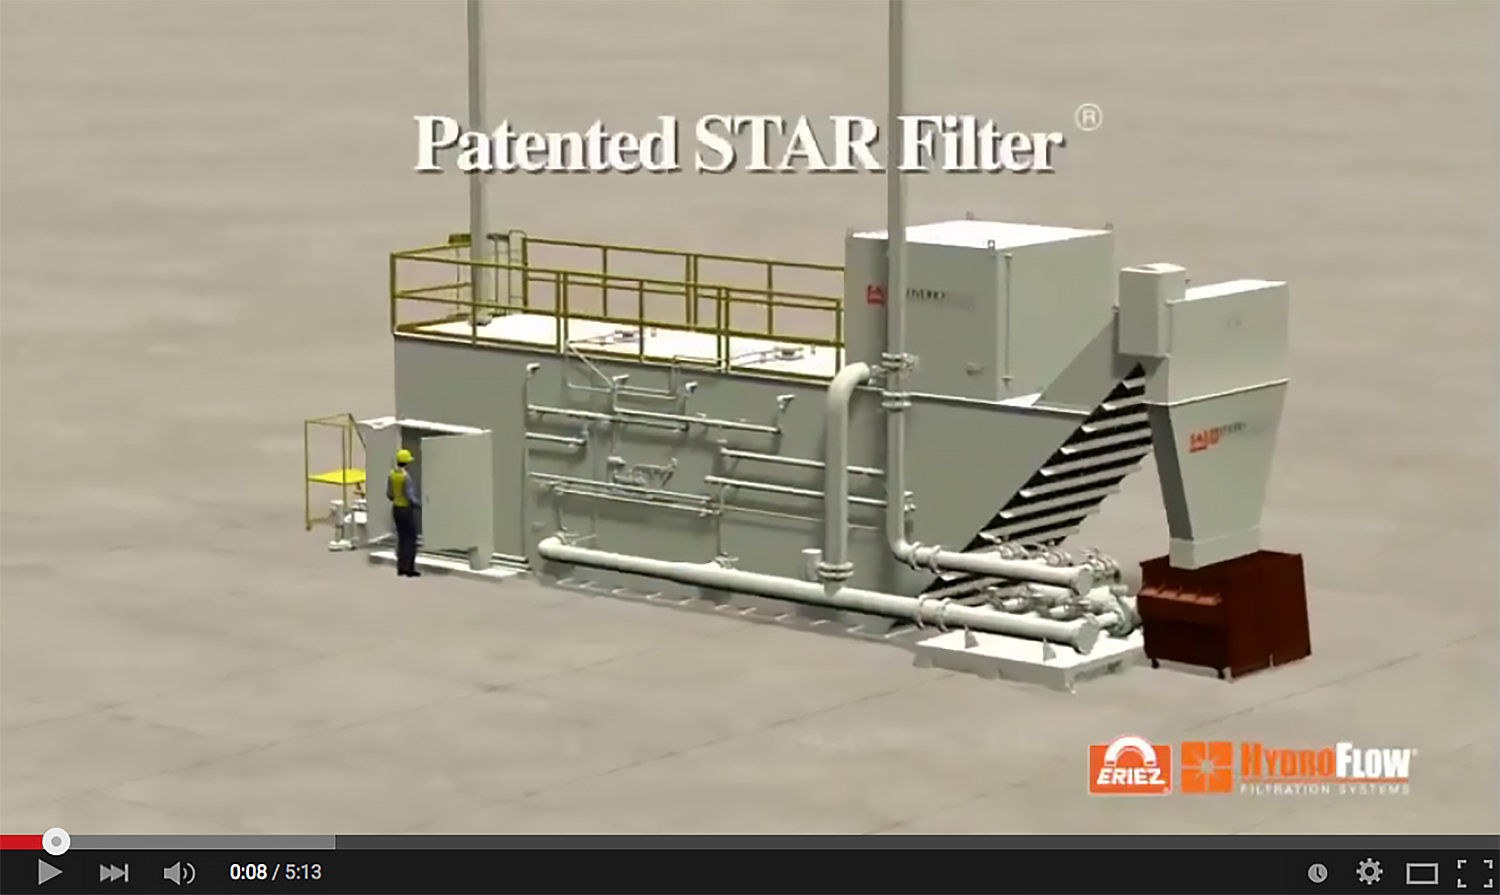 Eriez Animation Video Showcases Hydroflow Star Filter Used